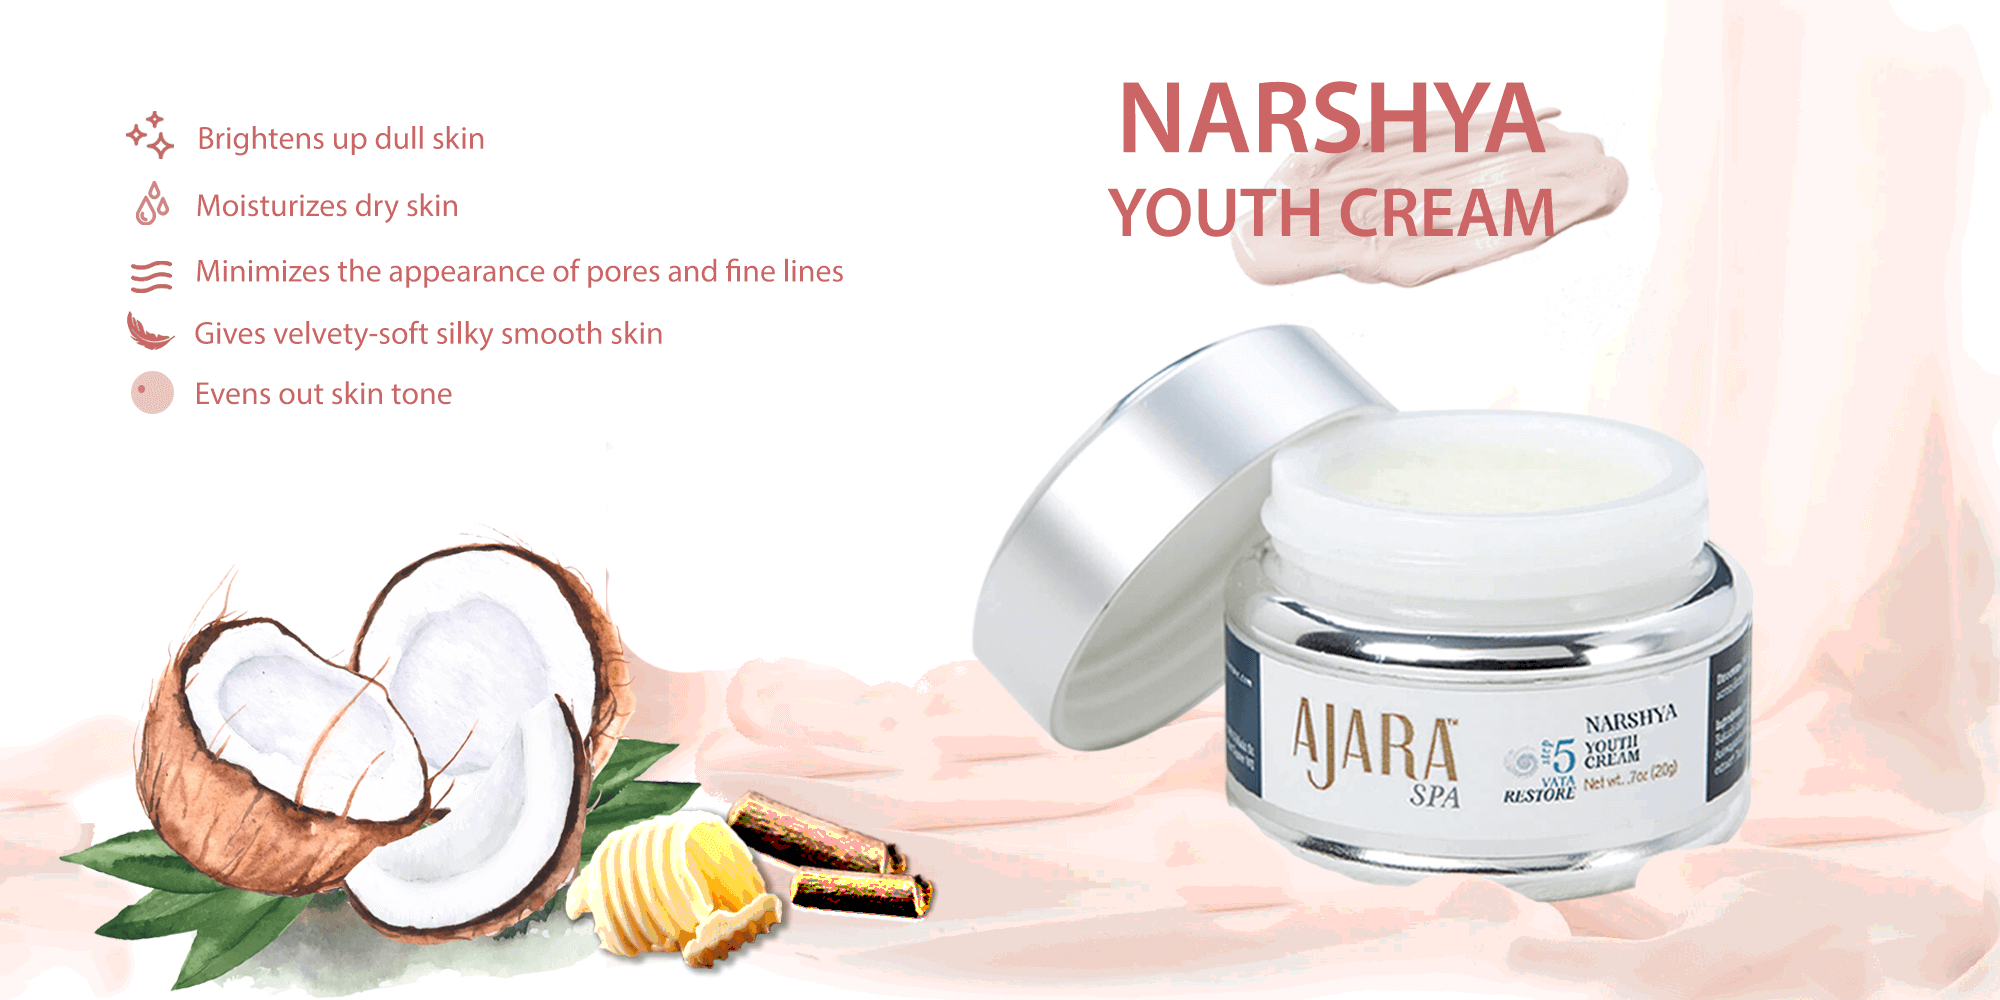 Narshya Youth Cream